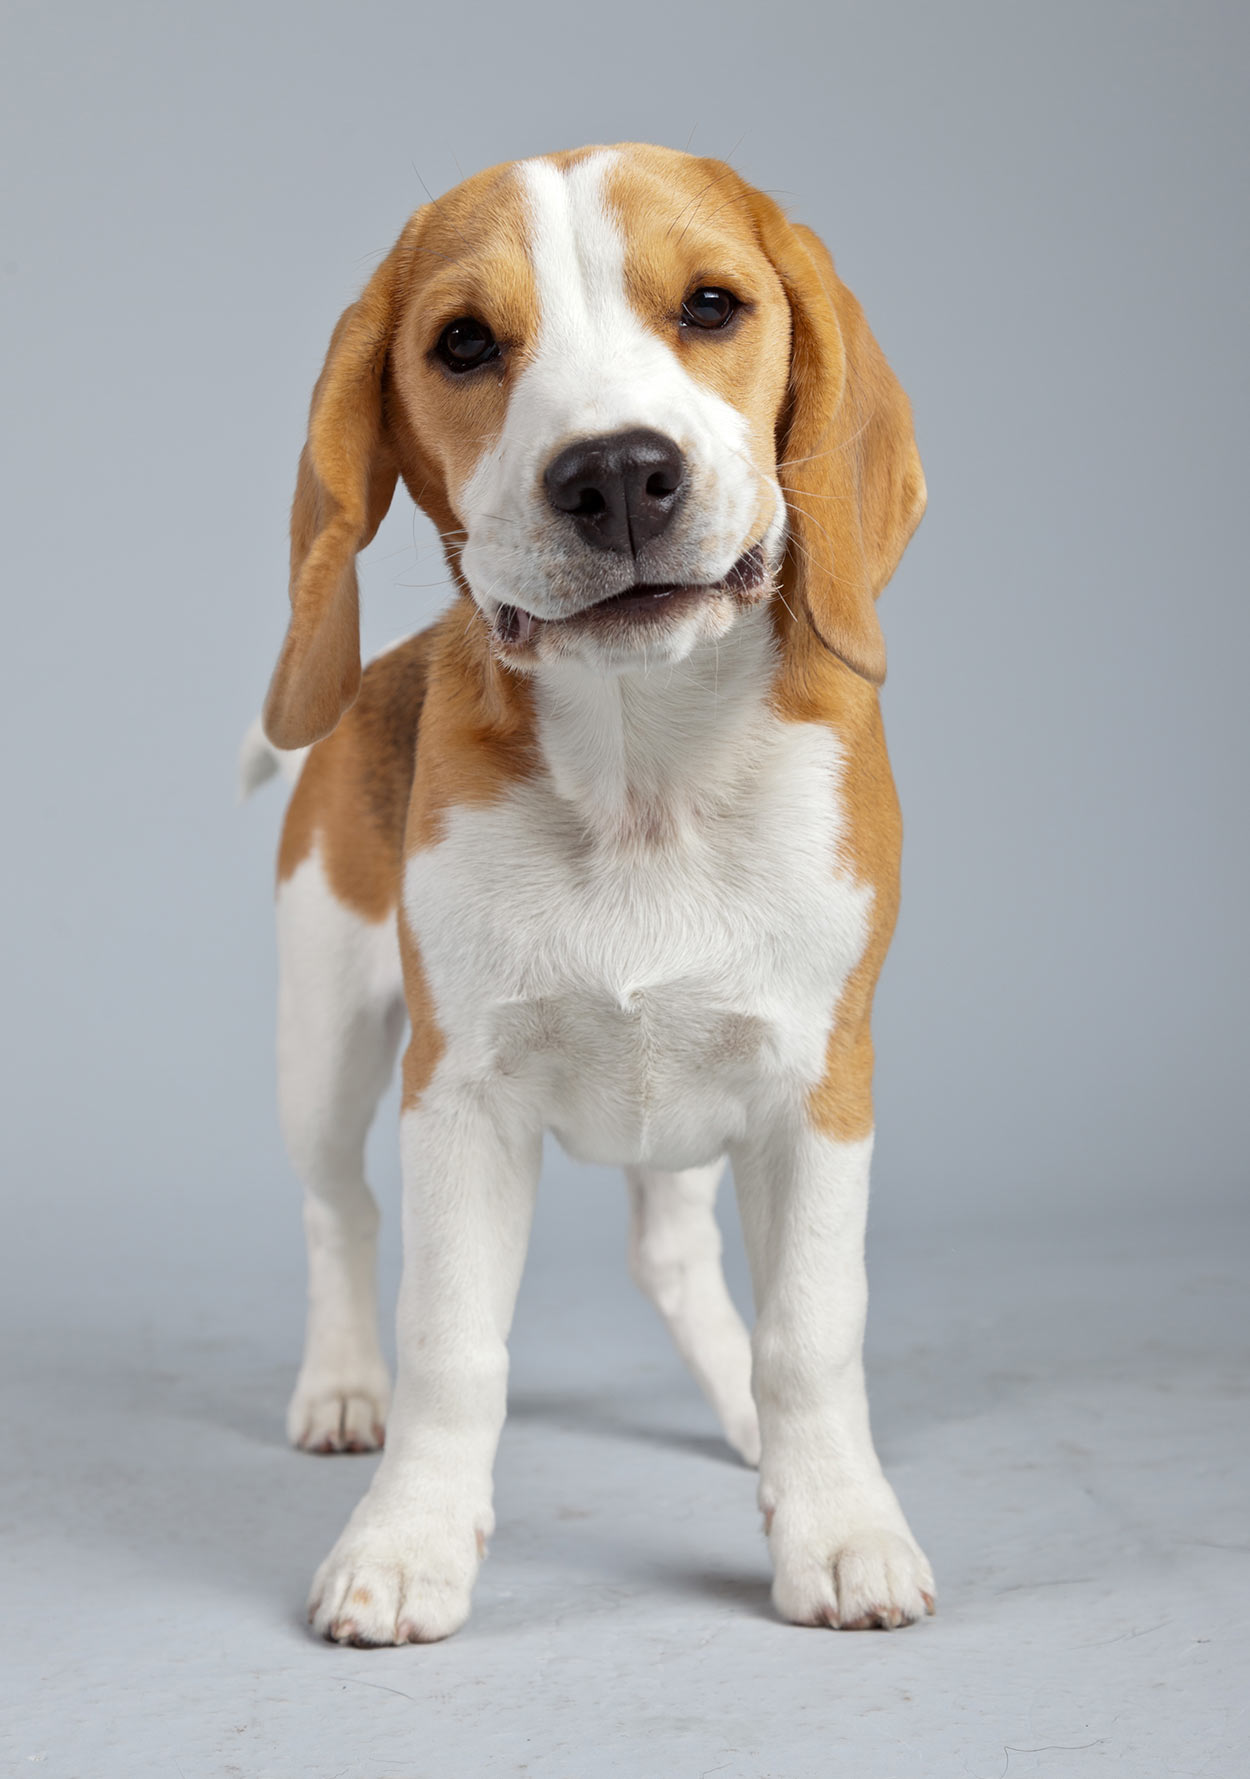 Beagle dog photo